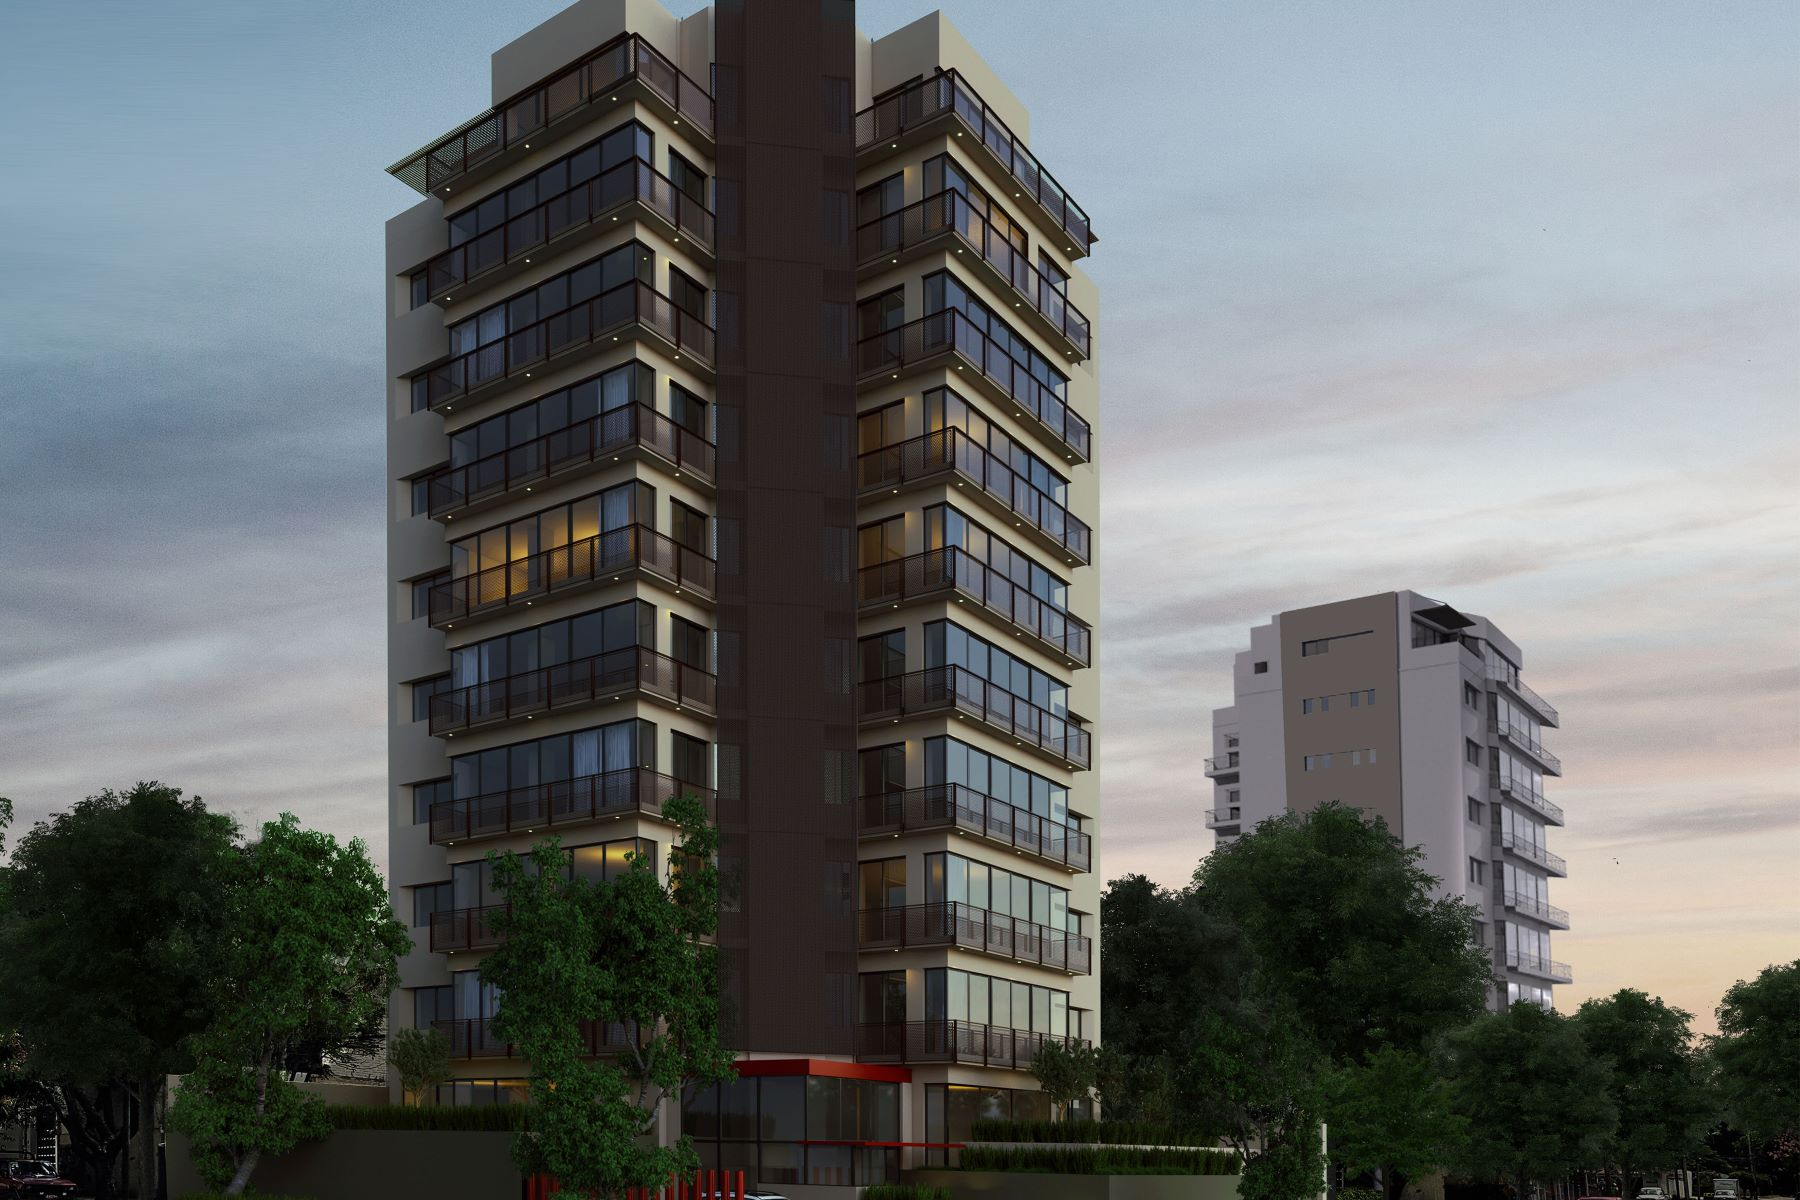 Appartement pour l Vente à North Country Tower Apartments Calle Mar Marmara 1899 Guadalajara, Jalisco, 44210 Mexique